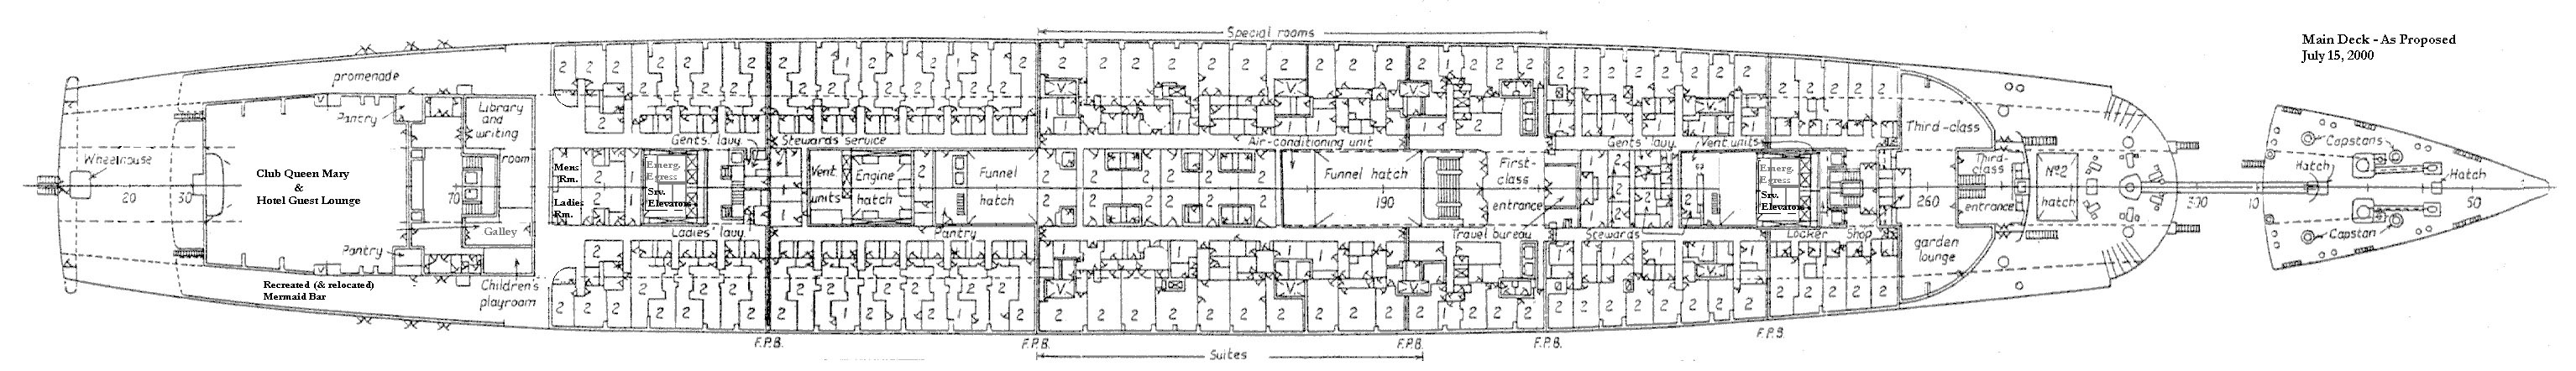 queen mary cabin plan